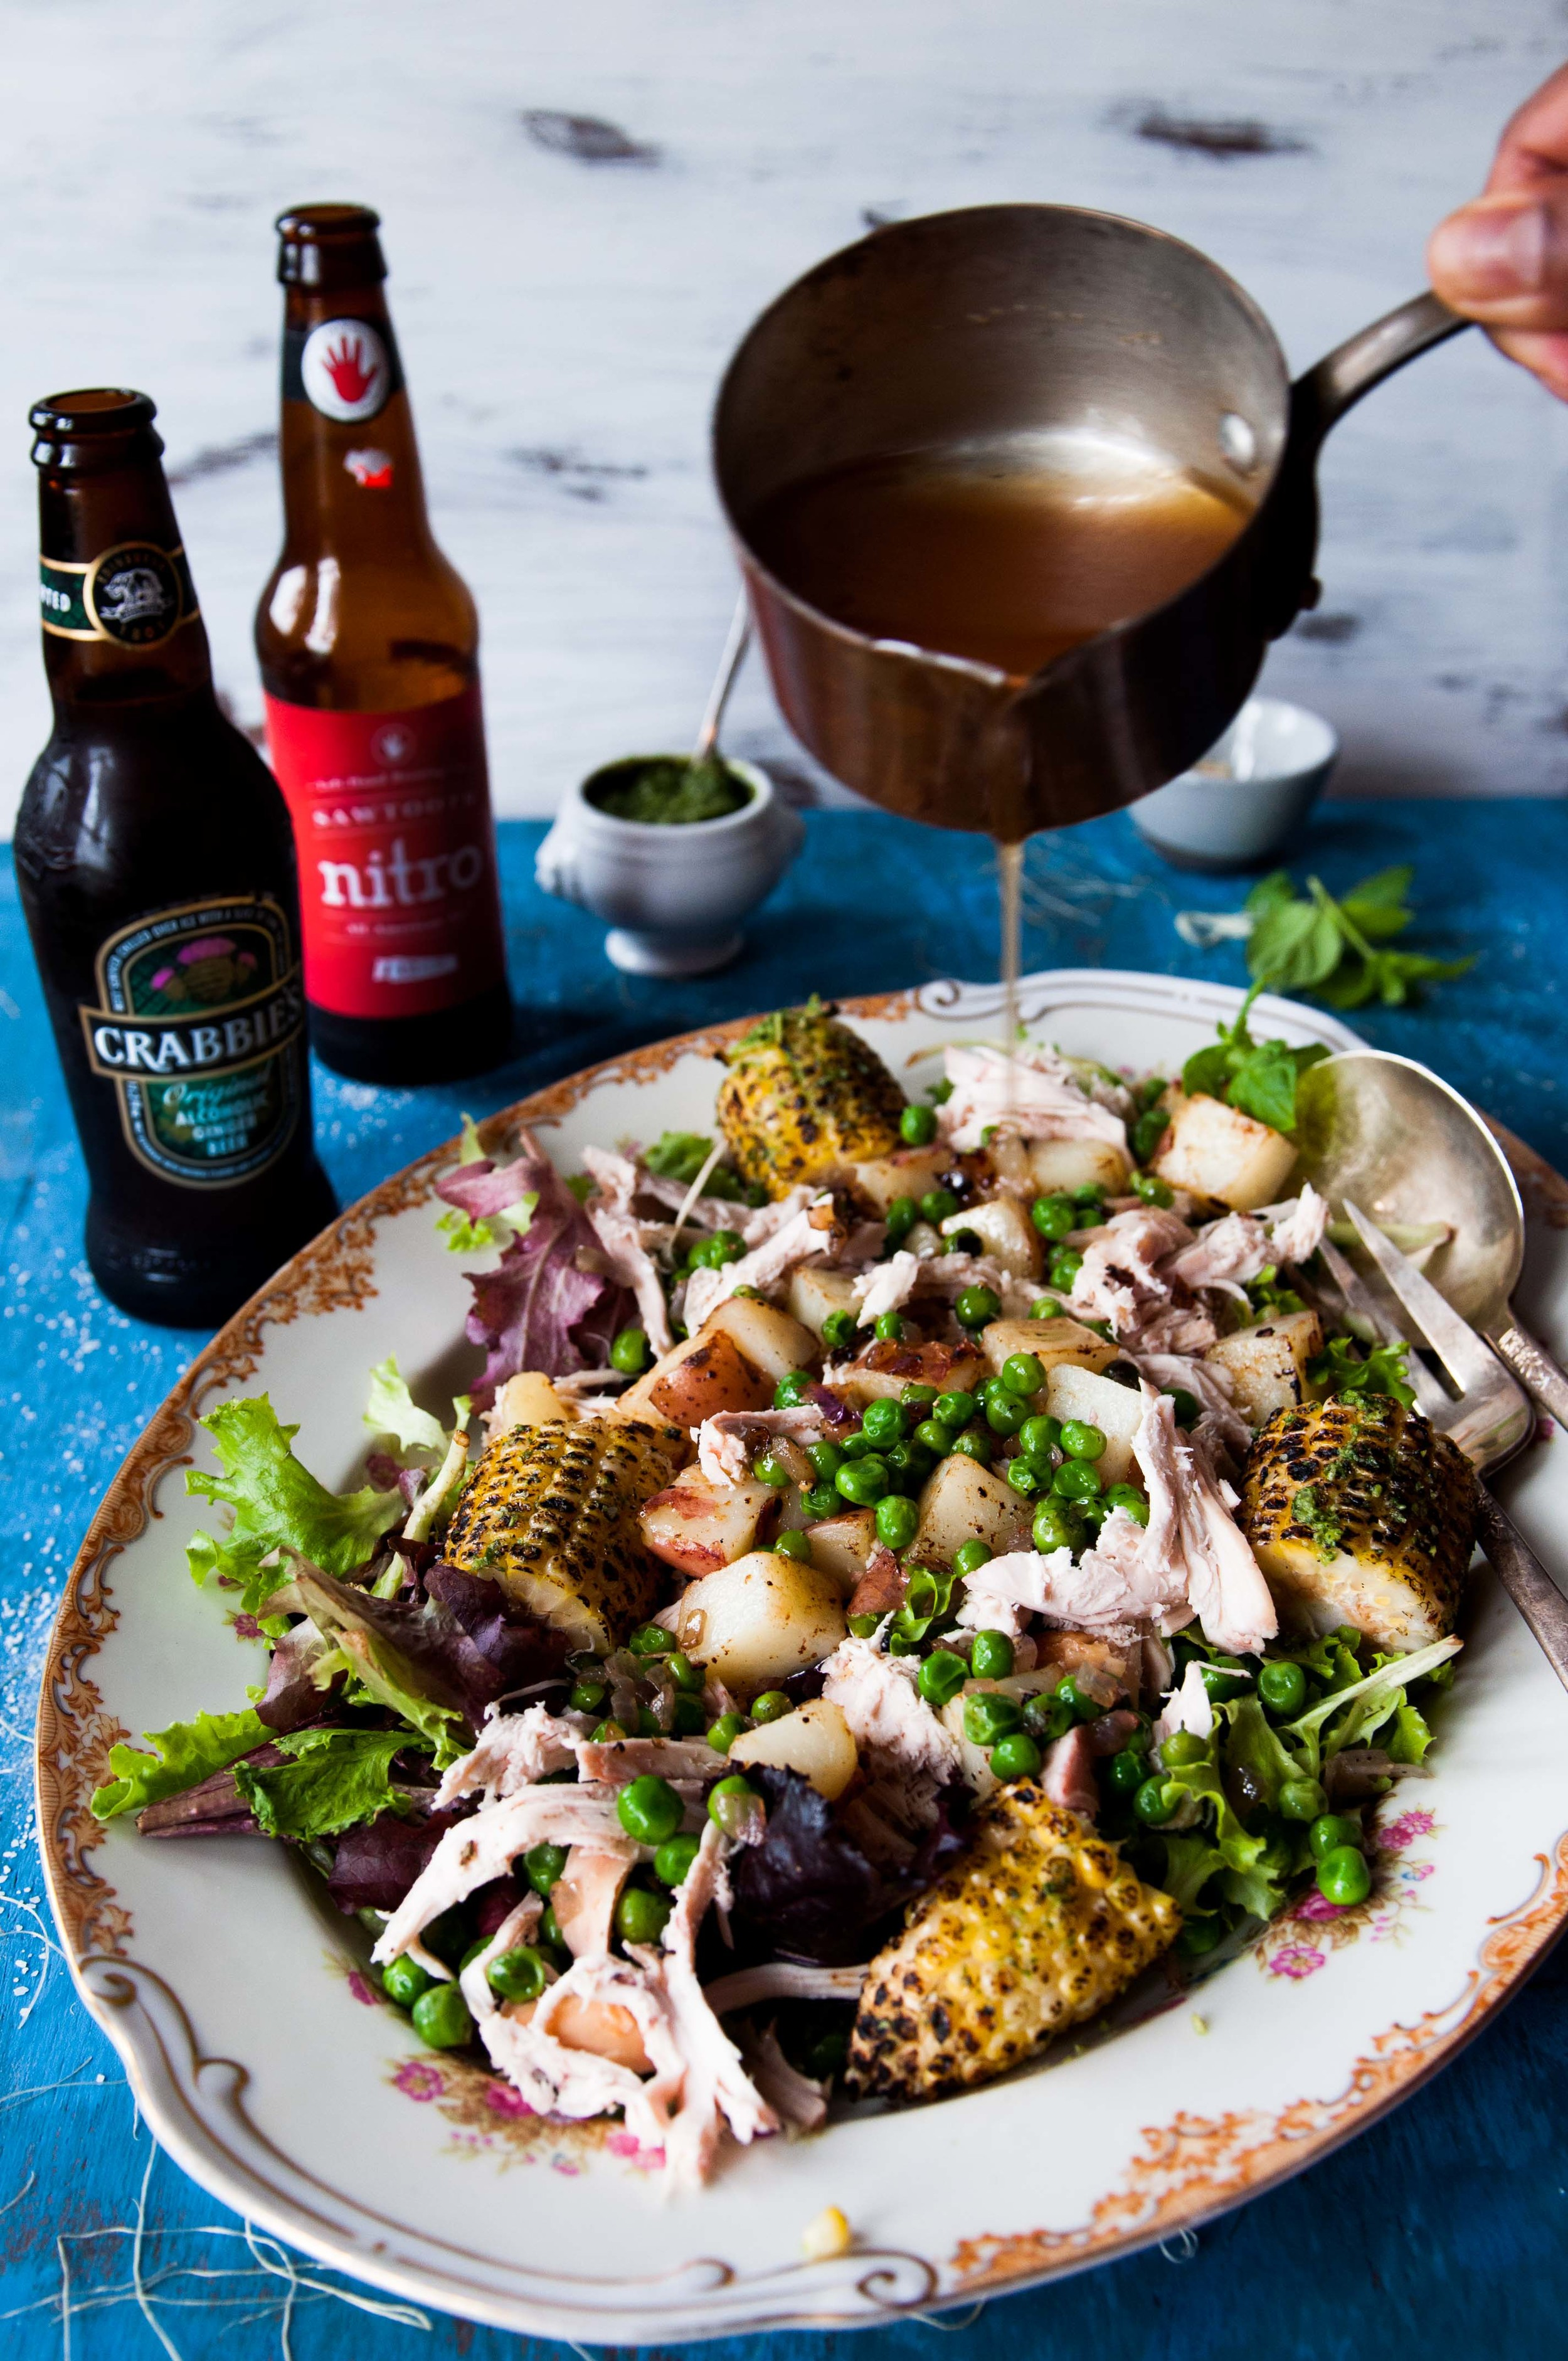 The chicken jus is a wonderful vinaigrette in this Summer Chicken Salad.